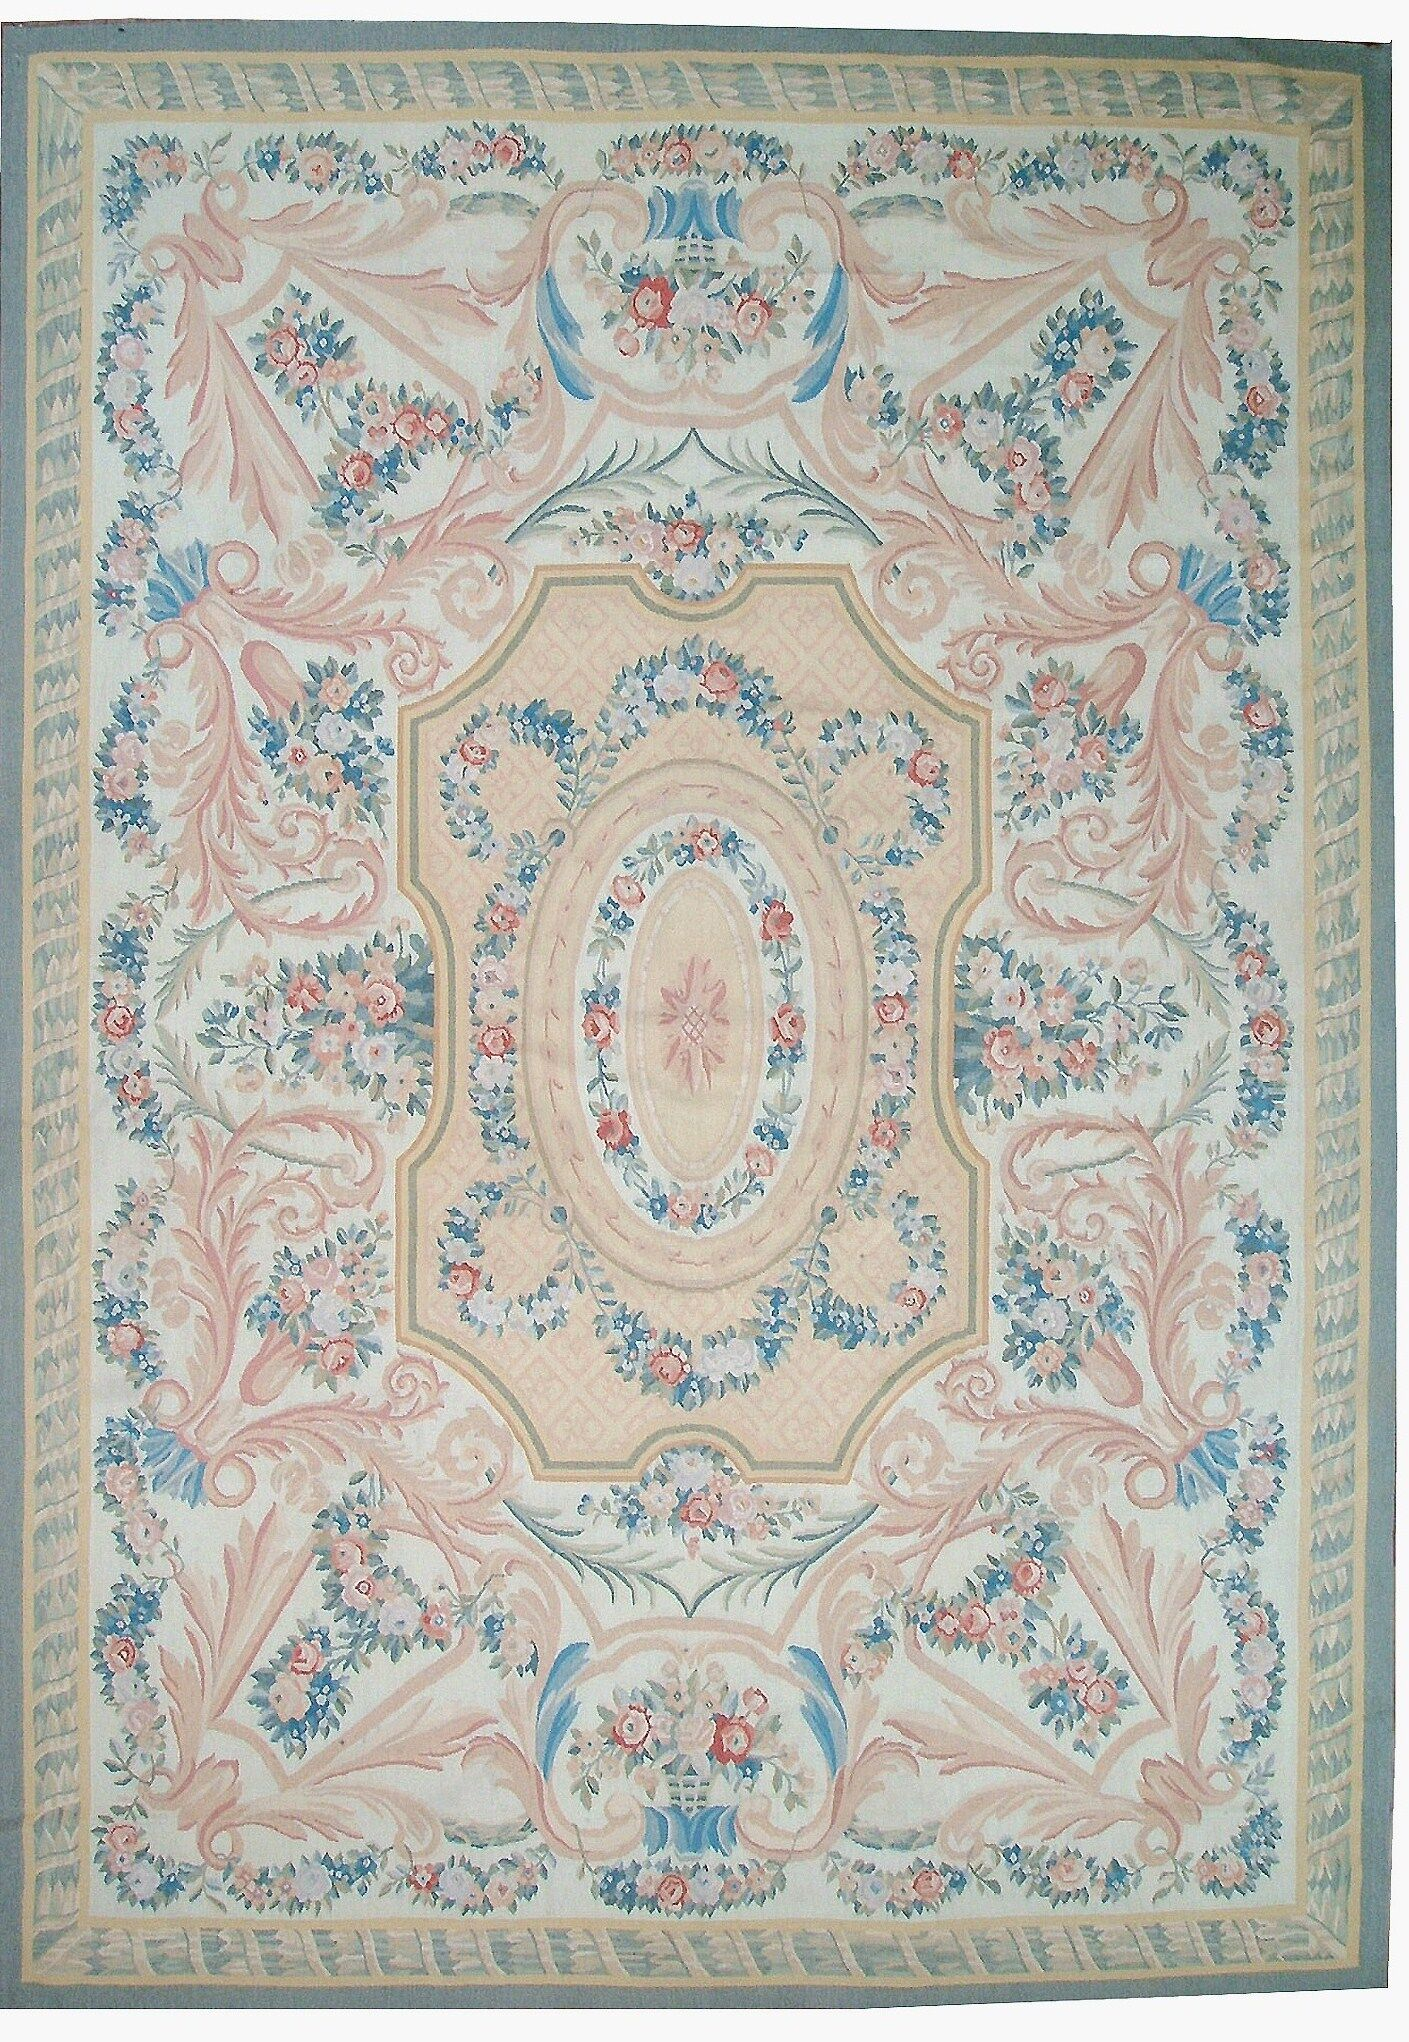 One-of-a-Kind Aubusson Hand-Woven Wool Blue/Beige/Peach Area Rug Rug Size: Rectangle 9'10